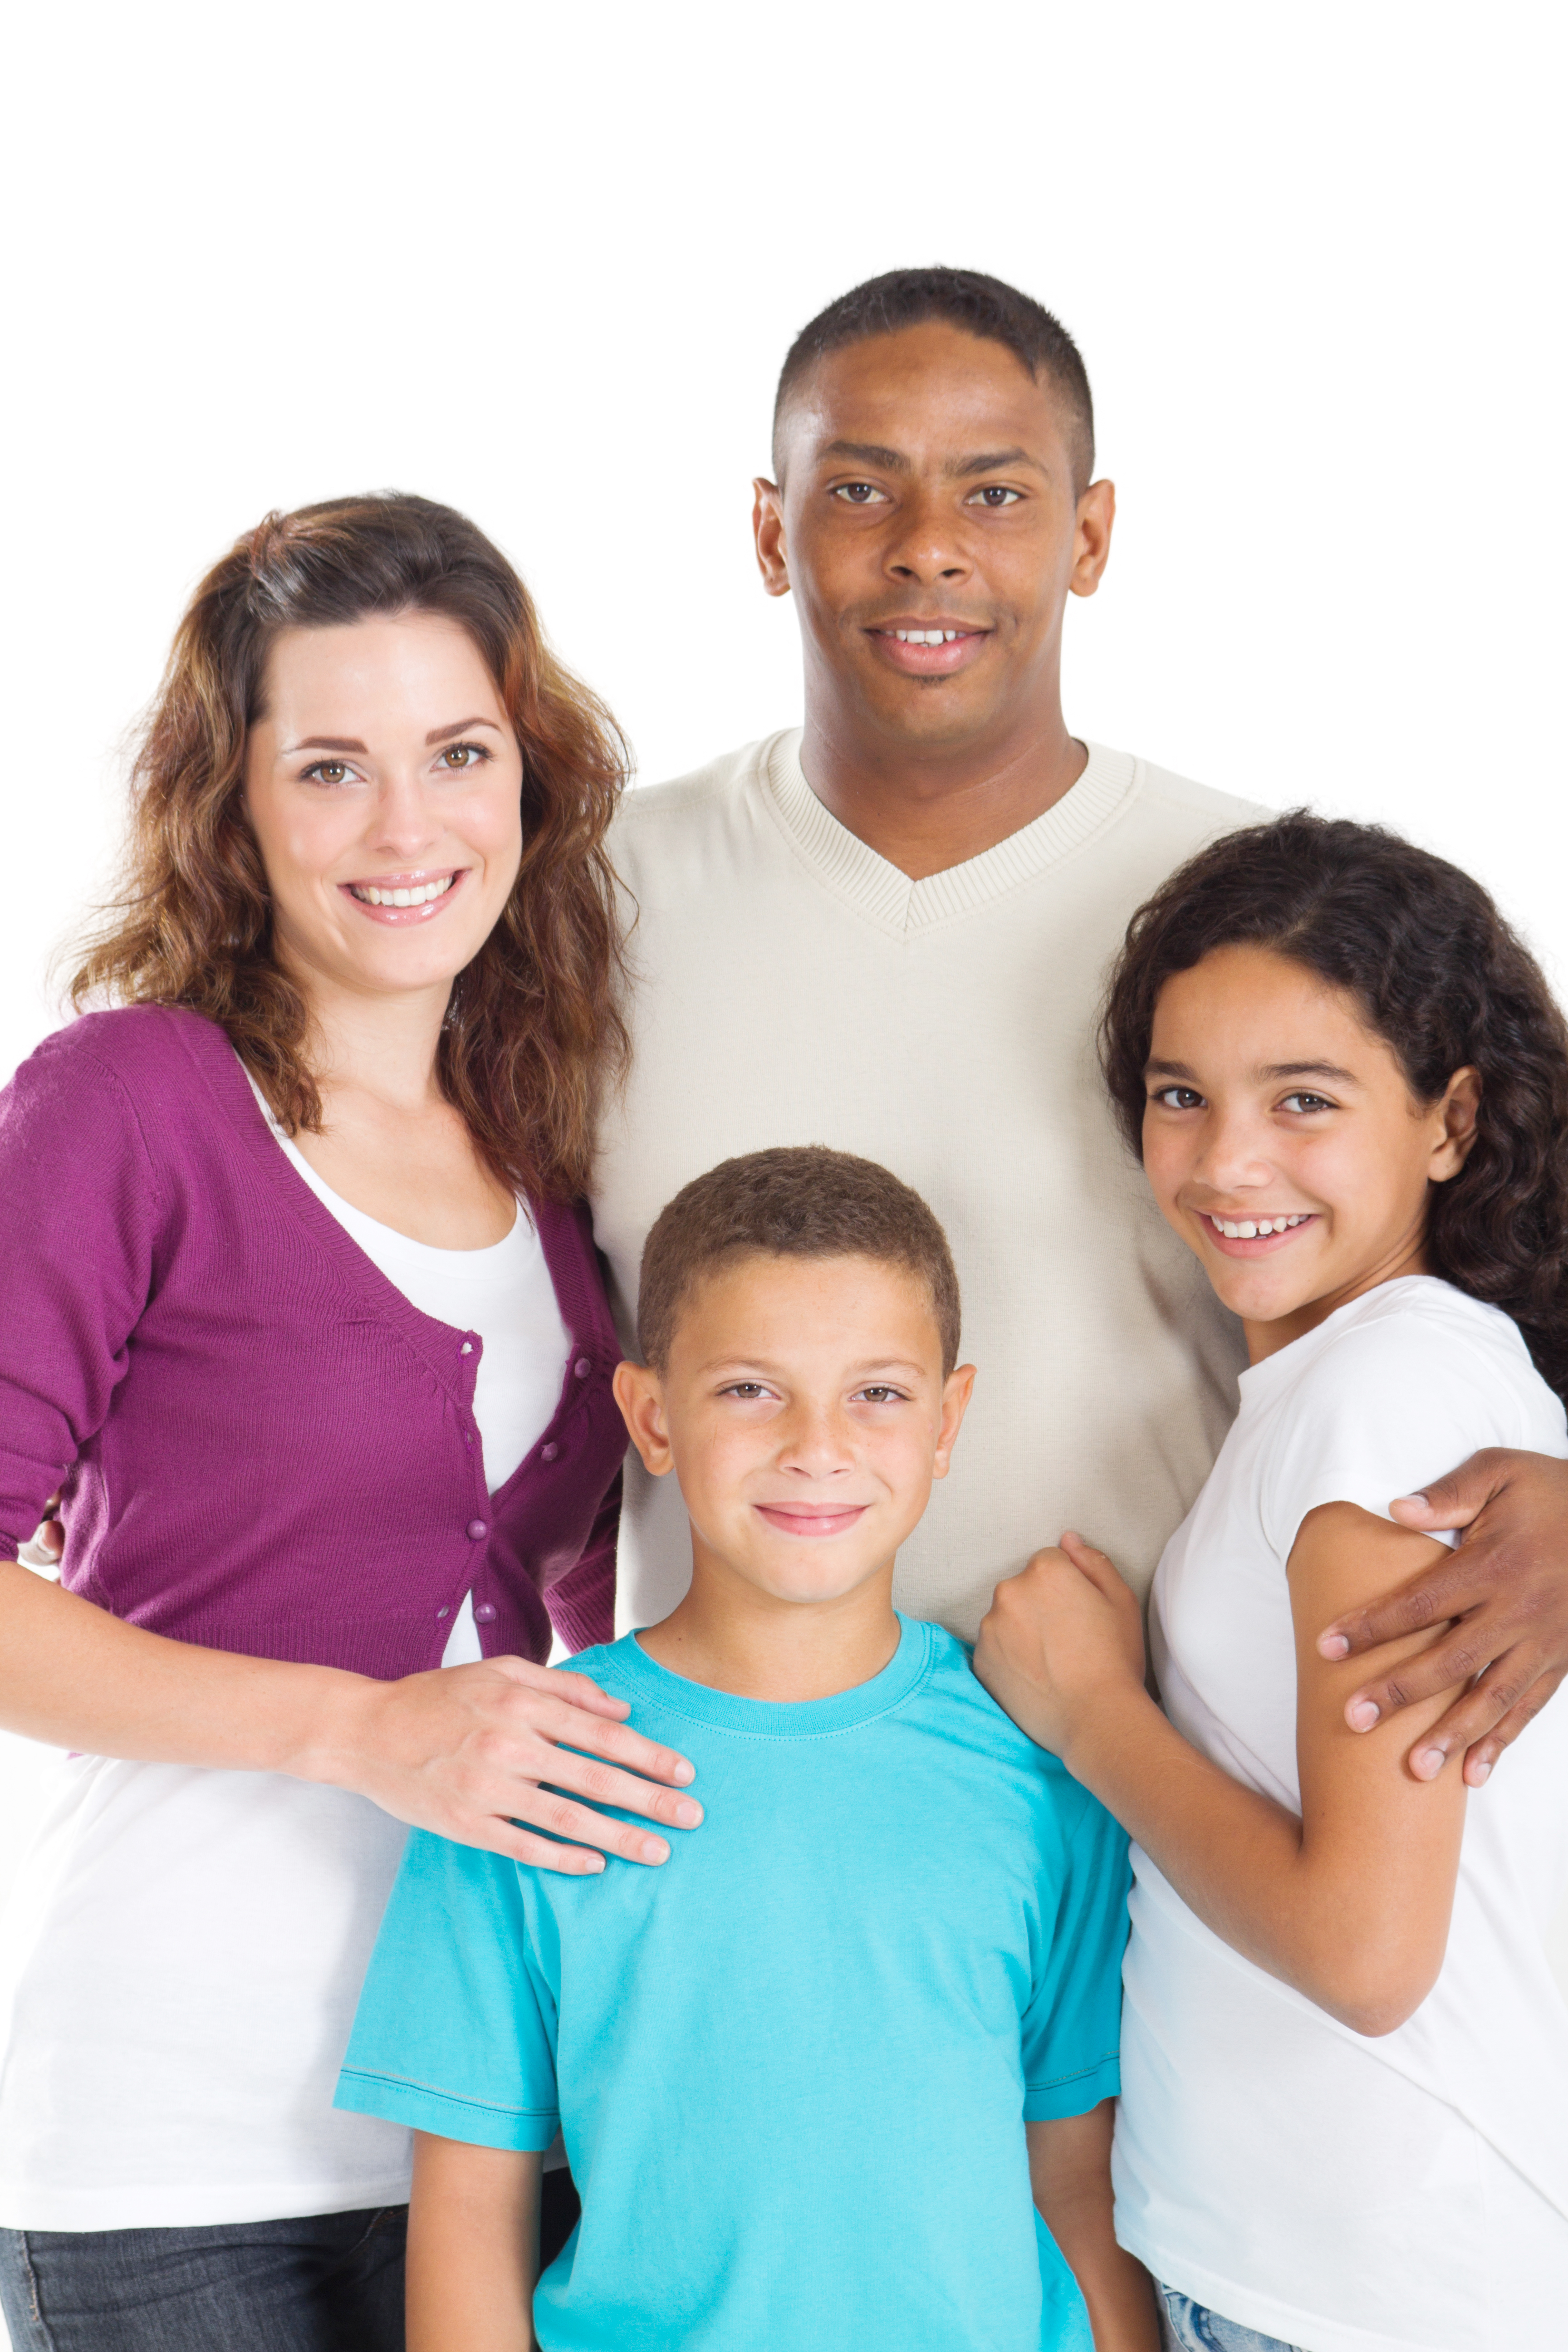 blended families in todays society Contrast these trends with america in the 1950s when society accepted that a model family consisted of a breadwinning father, a submissive housewife, and a couple of respectful, biological.